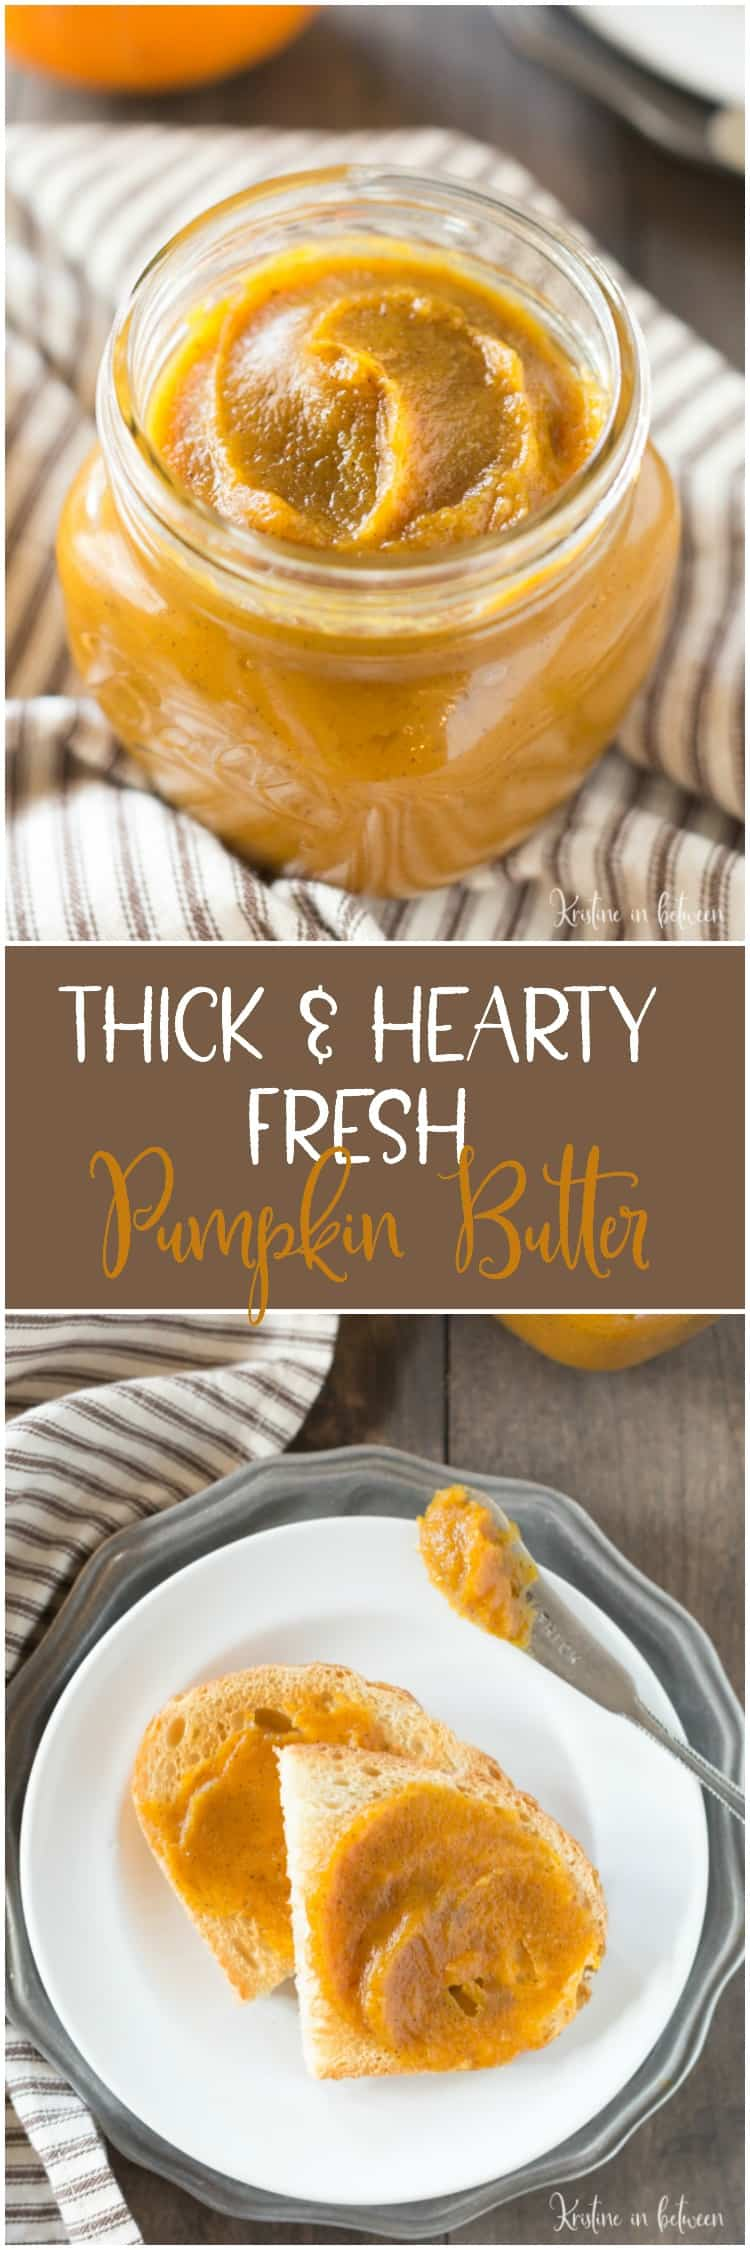 Thick & Hearty Fresh Pumpkin Butter